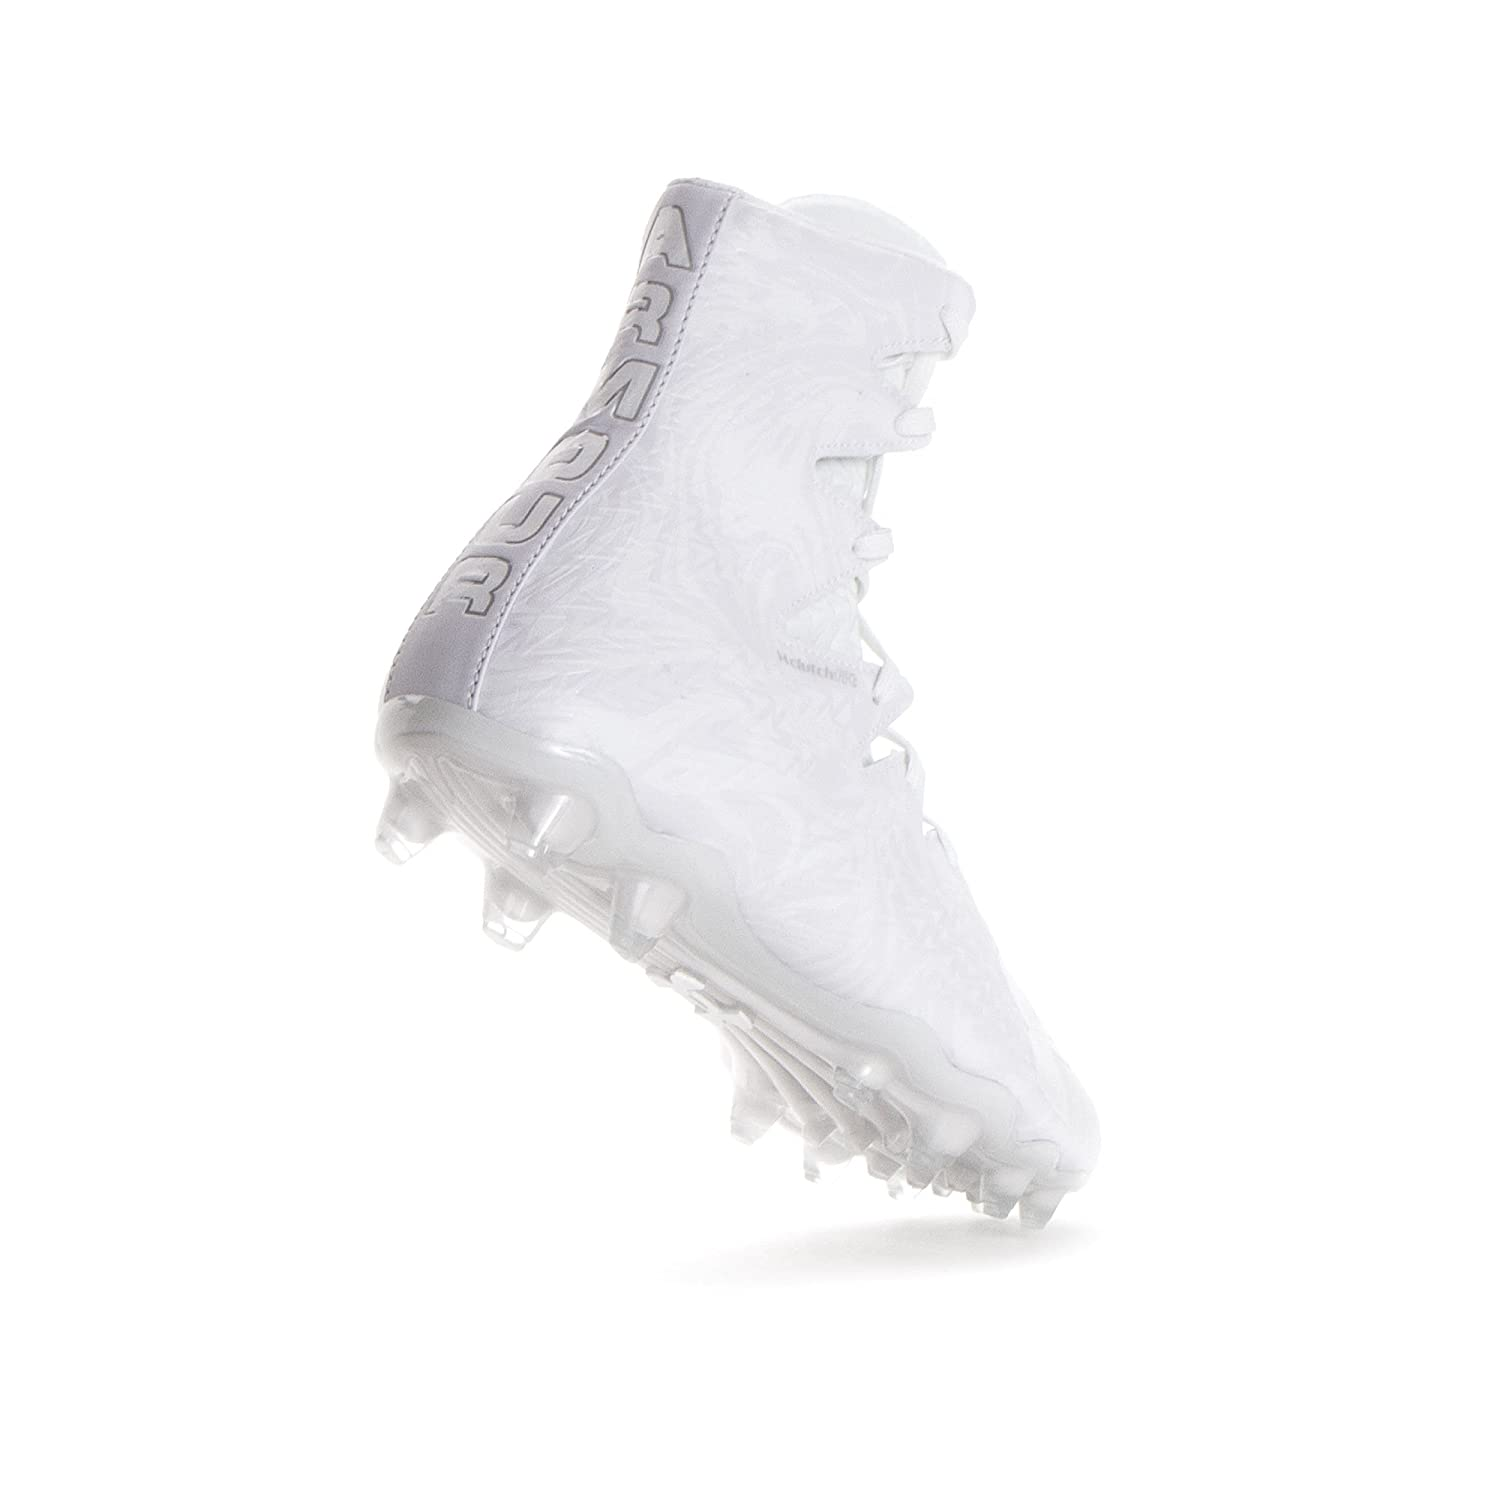 Under Armour Mens Highlight MC Football Cleat White//White 10 M US